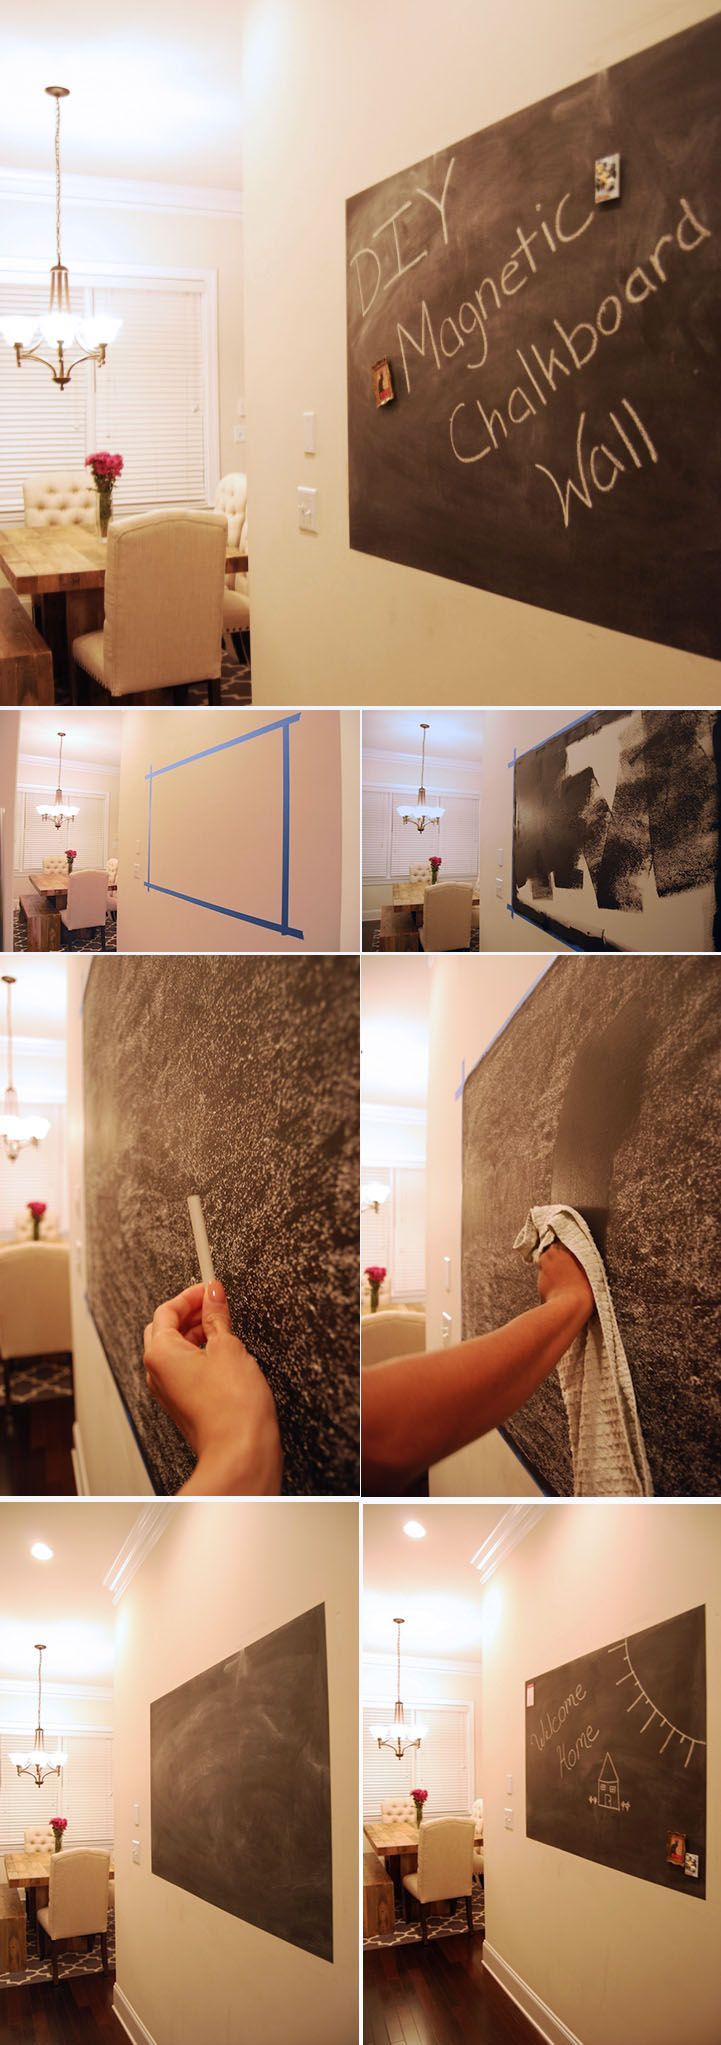 Diy Magnetic Chalkboard Wall The Community